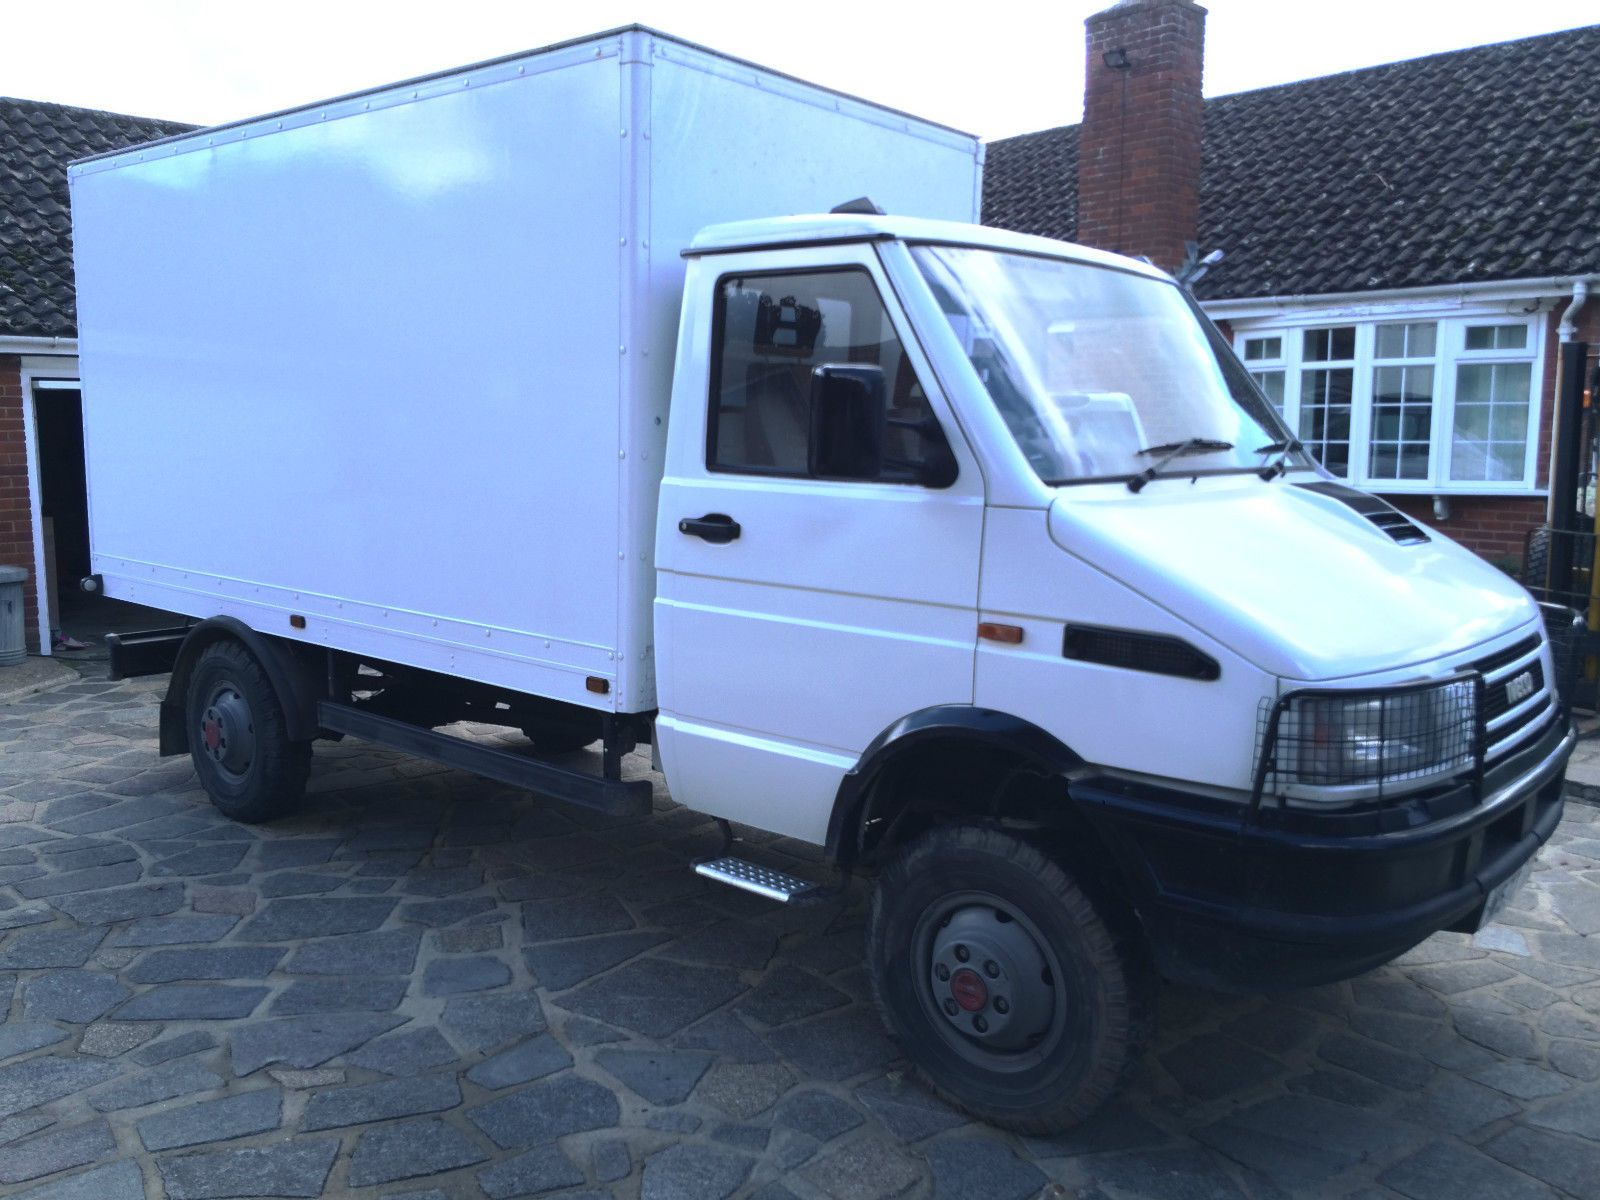 Iveco daily 40 10 4x4 4wd off road van overland camper mini unimog